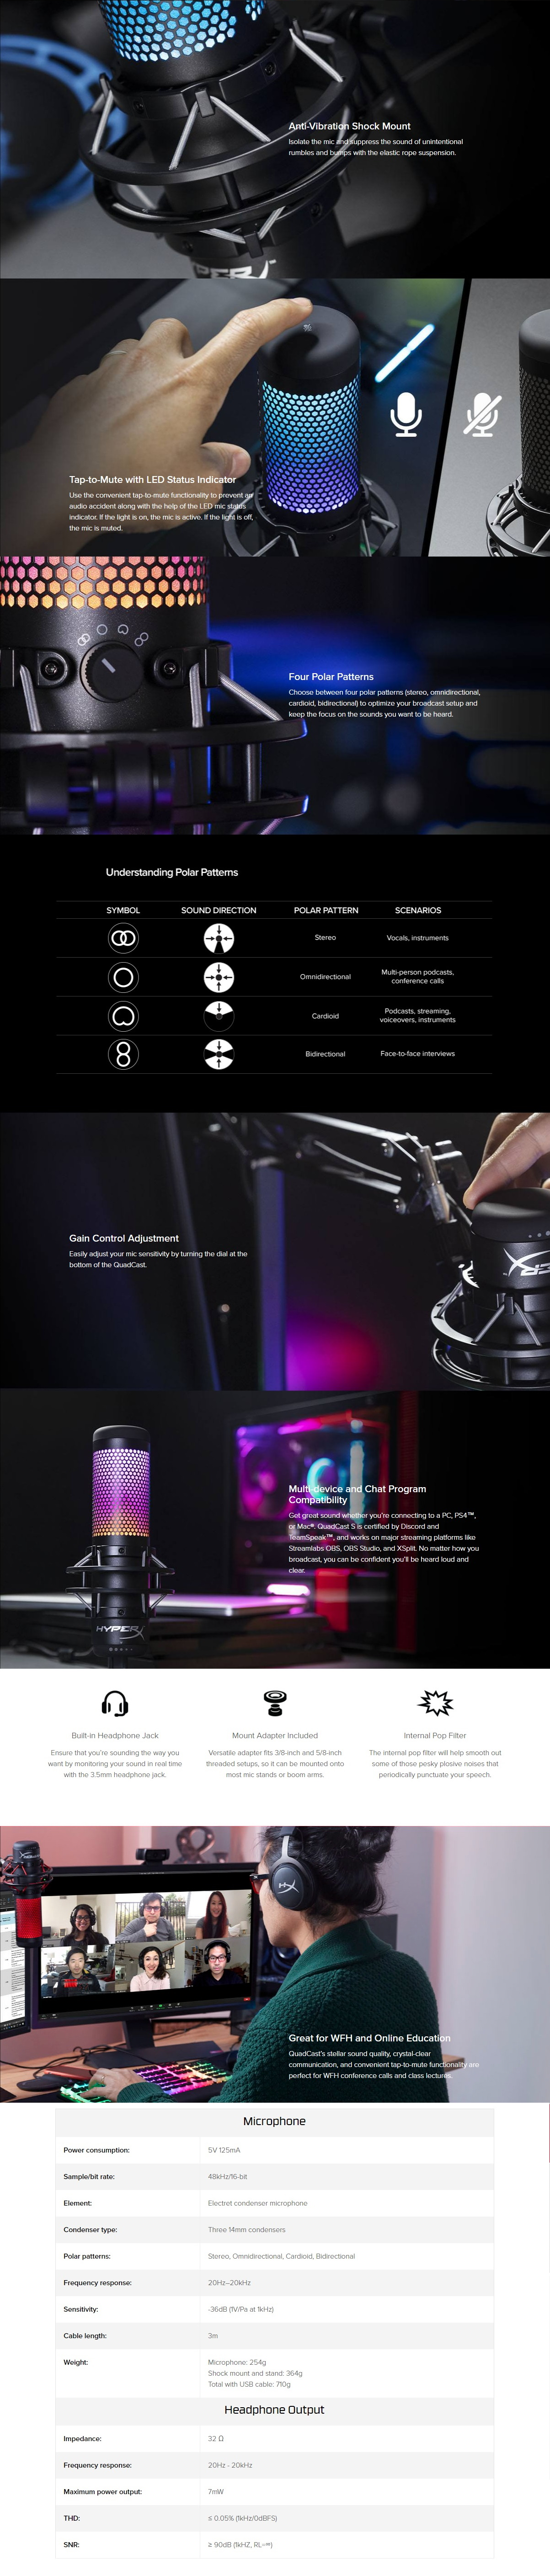 A large marketing image providing additional information about the product Kingston HyperX QuadCast S RGB USB Condenser Microphone - Additional alt info not provided